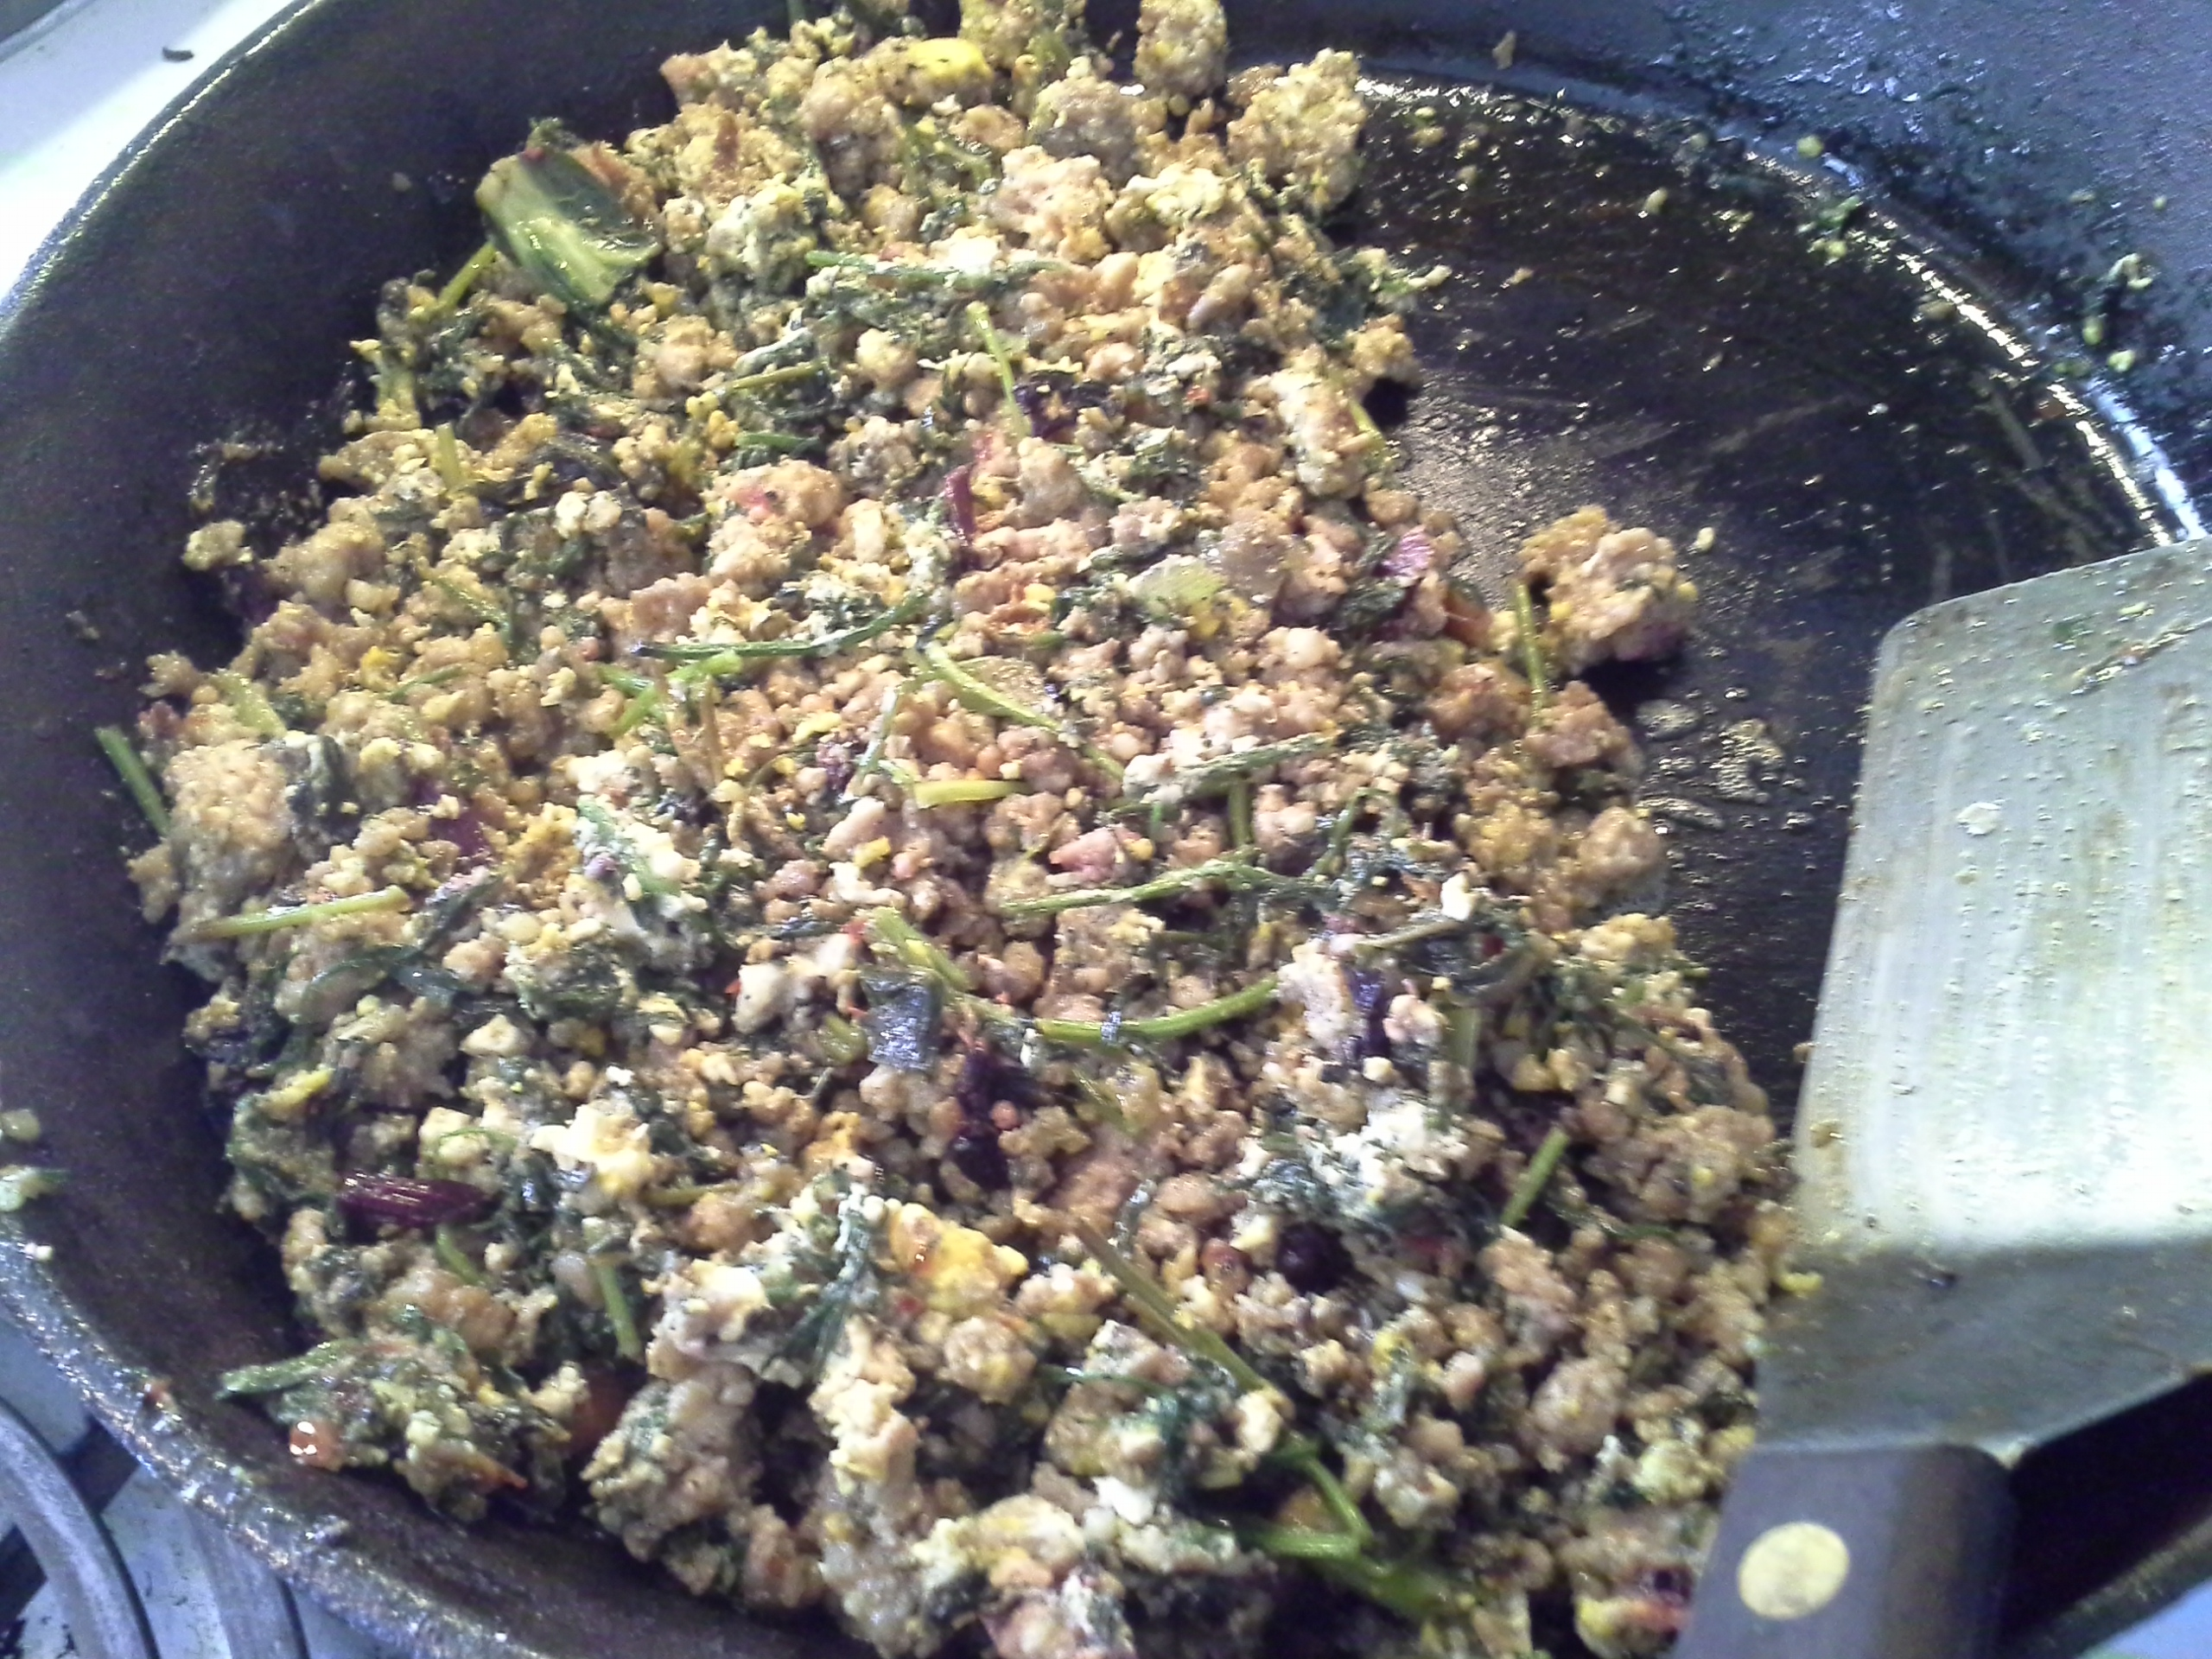 Breakfast: 10:50 a.m. | Pork sausage, eggs, carrot greens, greens mix, coconut oil, herbs & spices